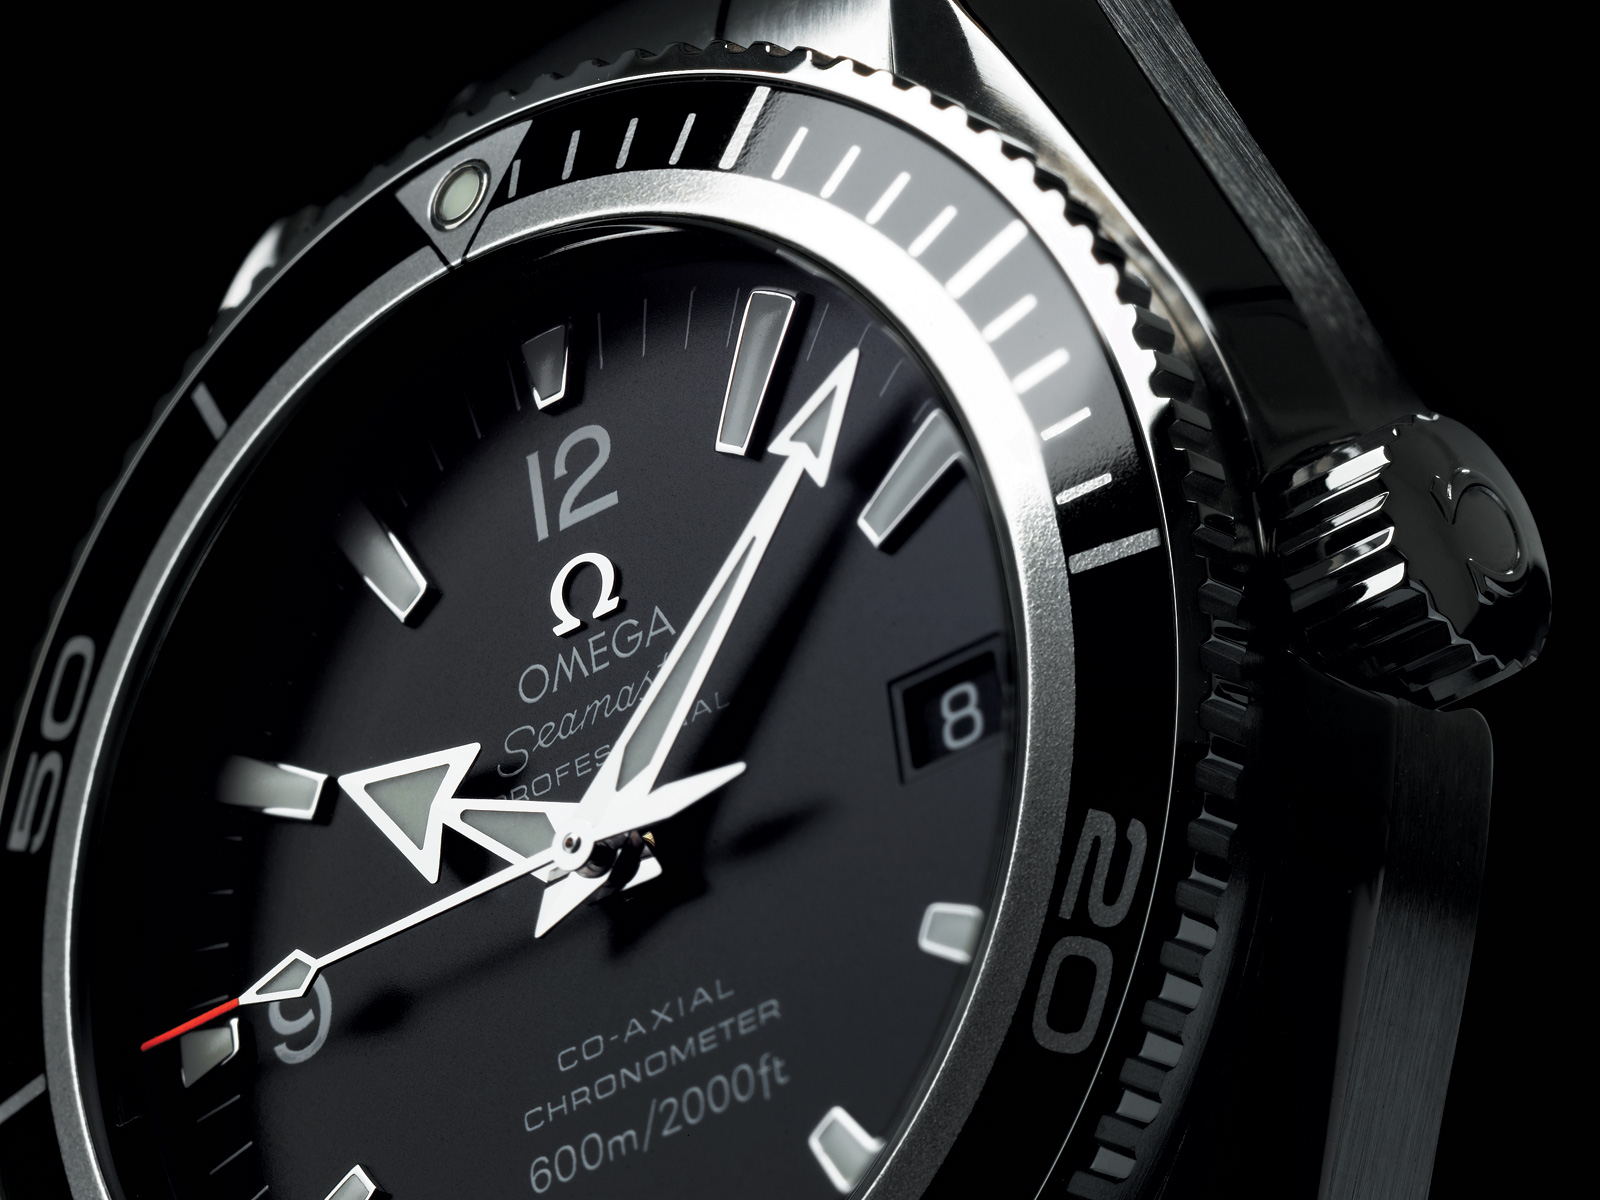 MILLION OF WALLPAPERSCOM OMEGA SWISS LUXURY WATCHES WALLPAPERS 1600x1200